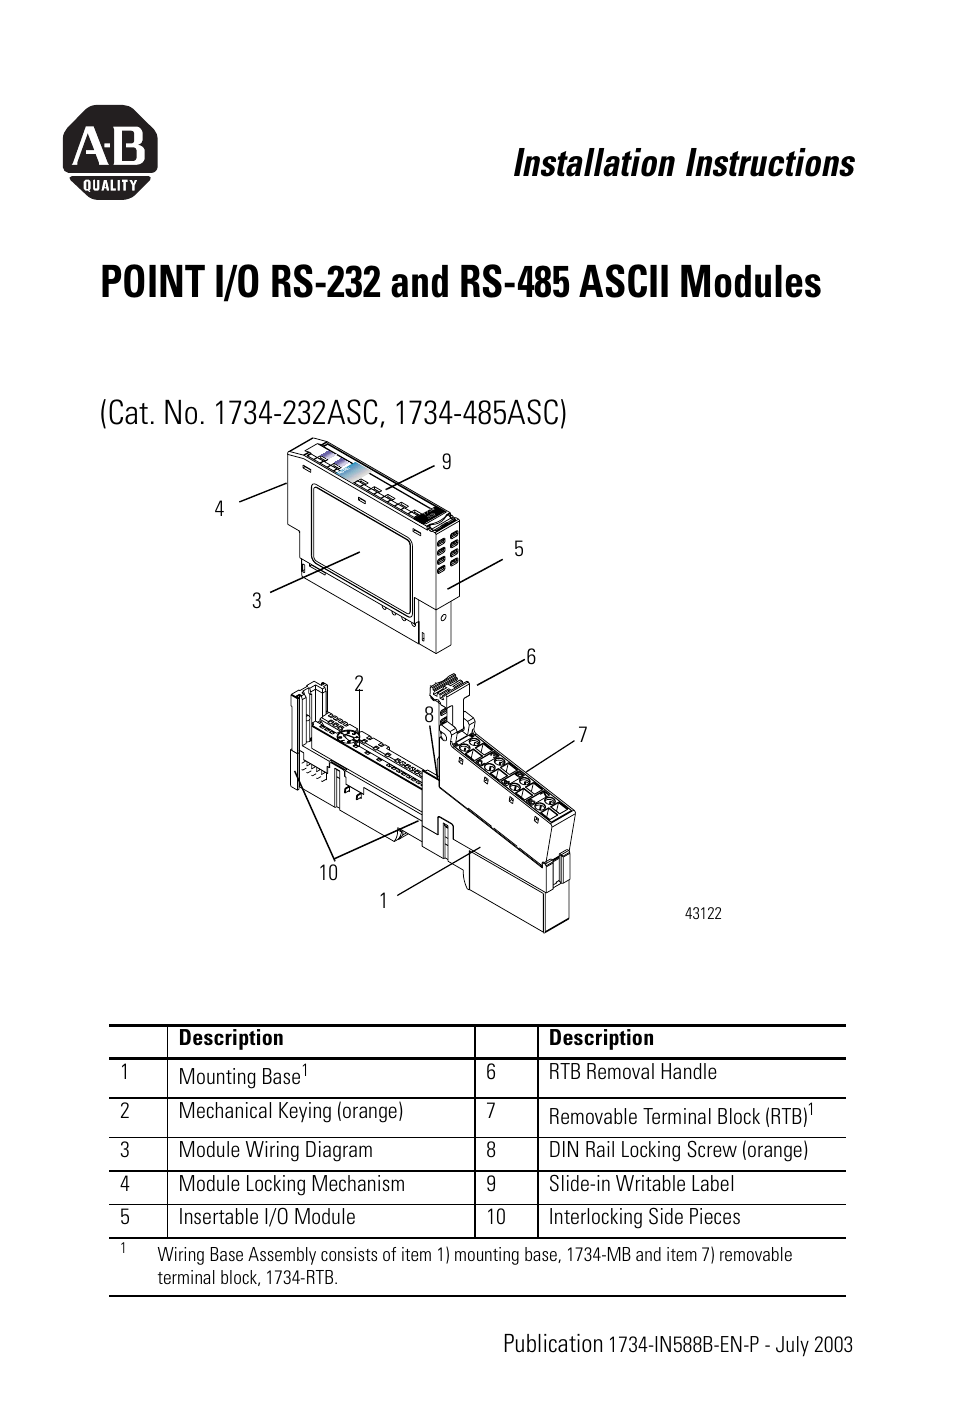 medium resolution of rockwell automation 1734 485asc point i o rs 232 and rs 485 ascii modules installation instructions user manual 24 pages also for 1734 a232asc point